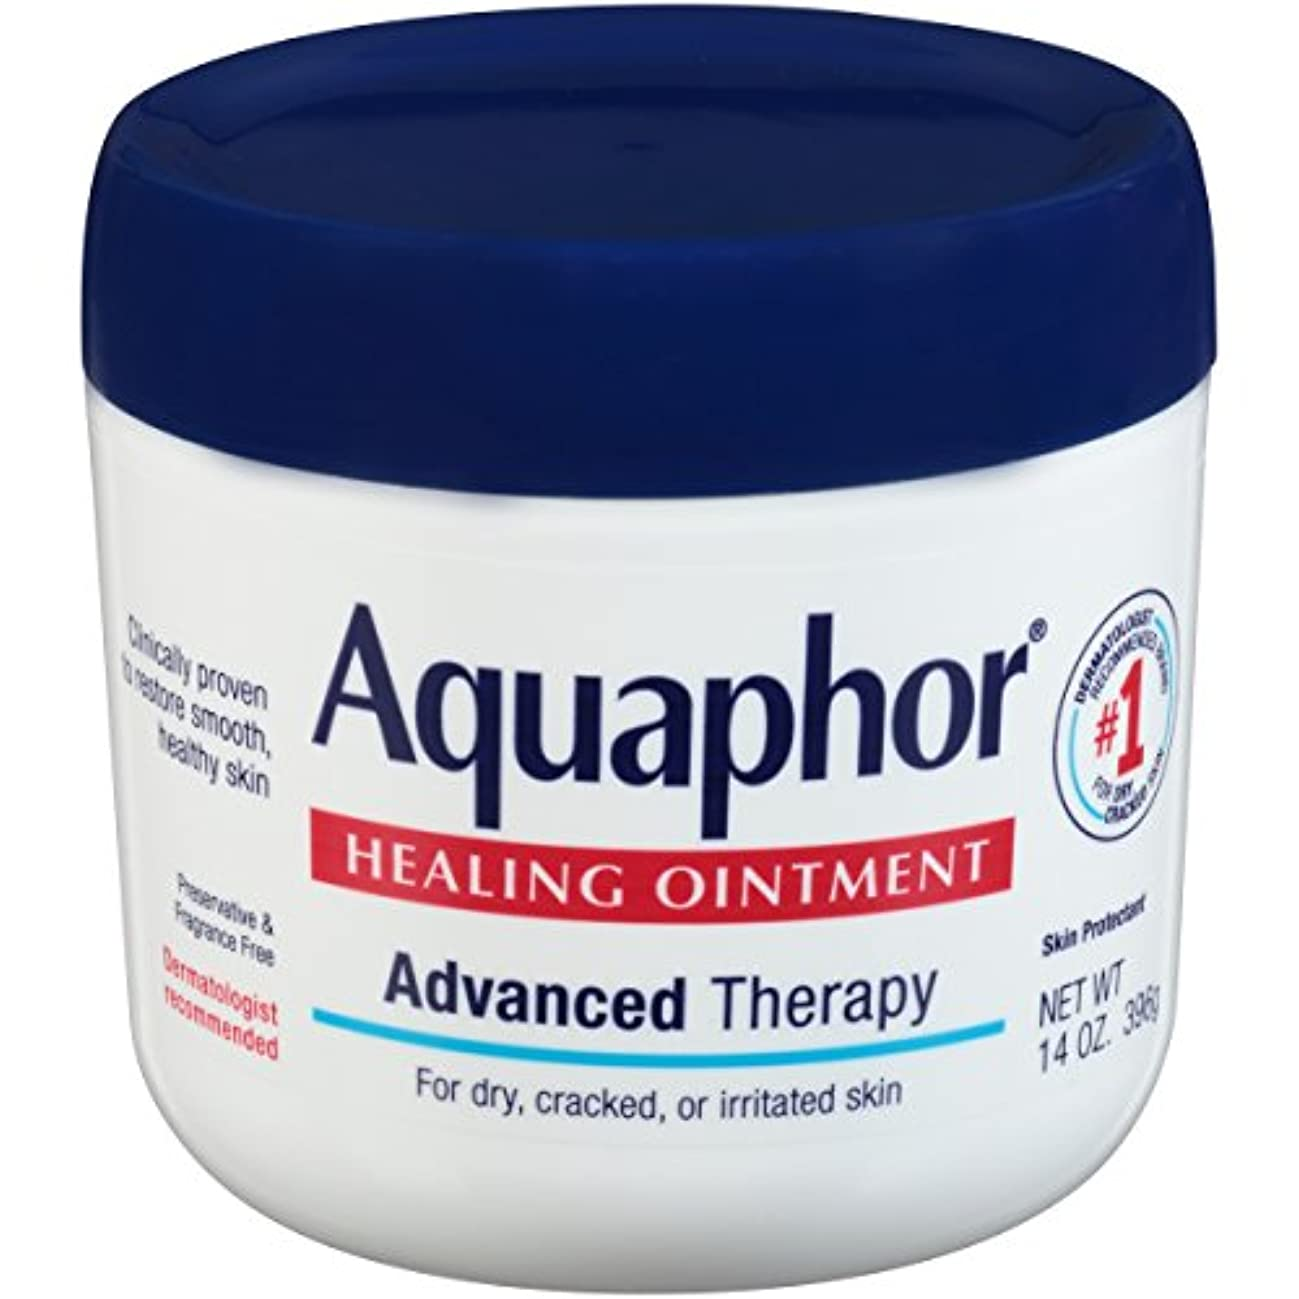 宿る説得ペルソナ海外直送品Aquaphor Advanced Therapy Healing Ointment, 14 oz by Aquaphor